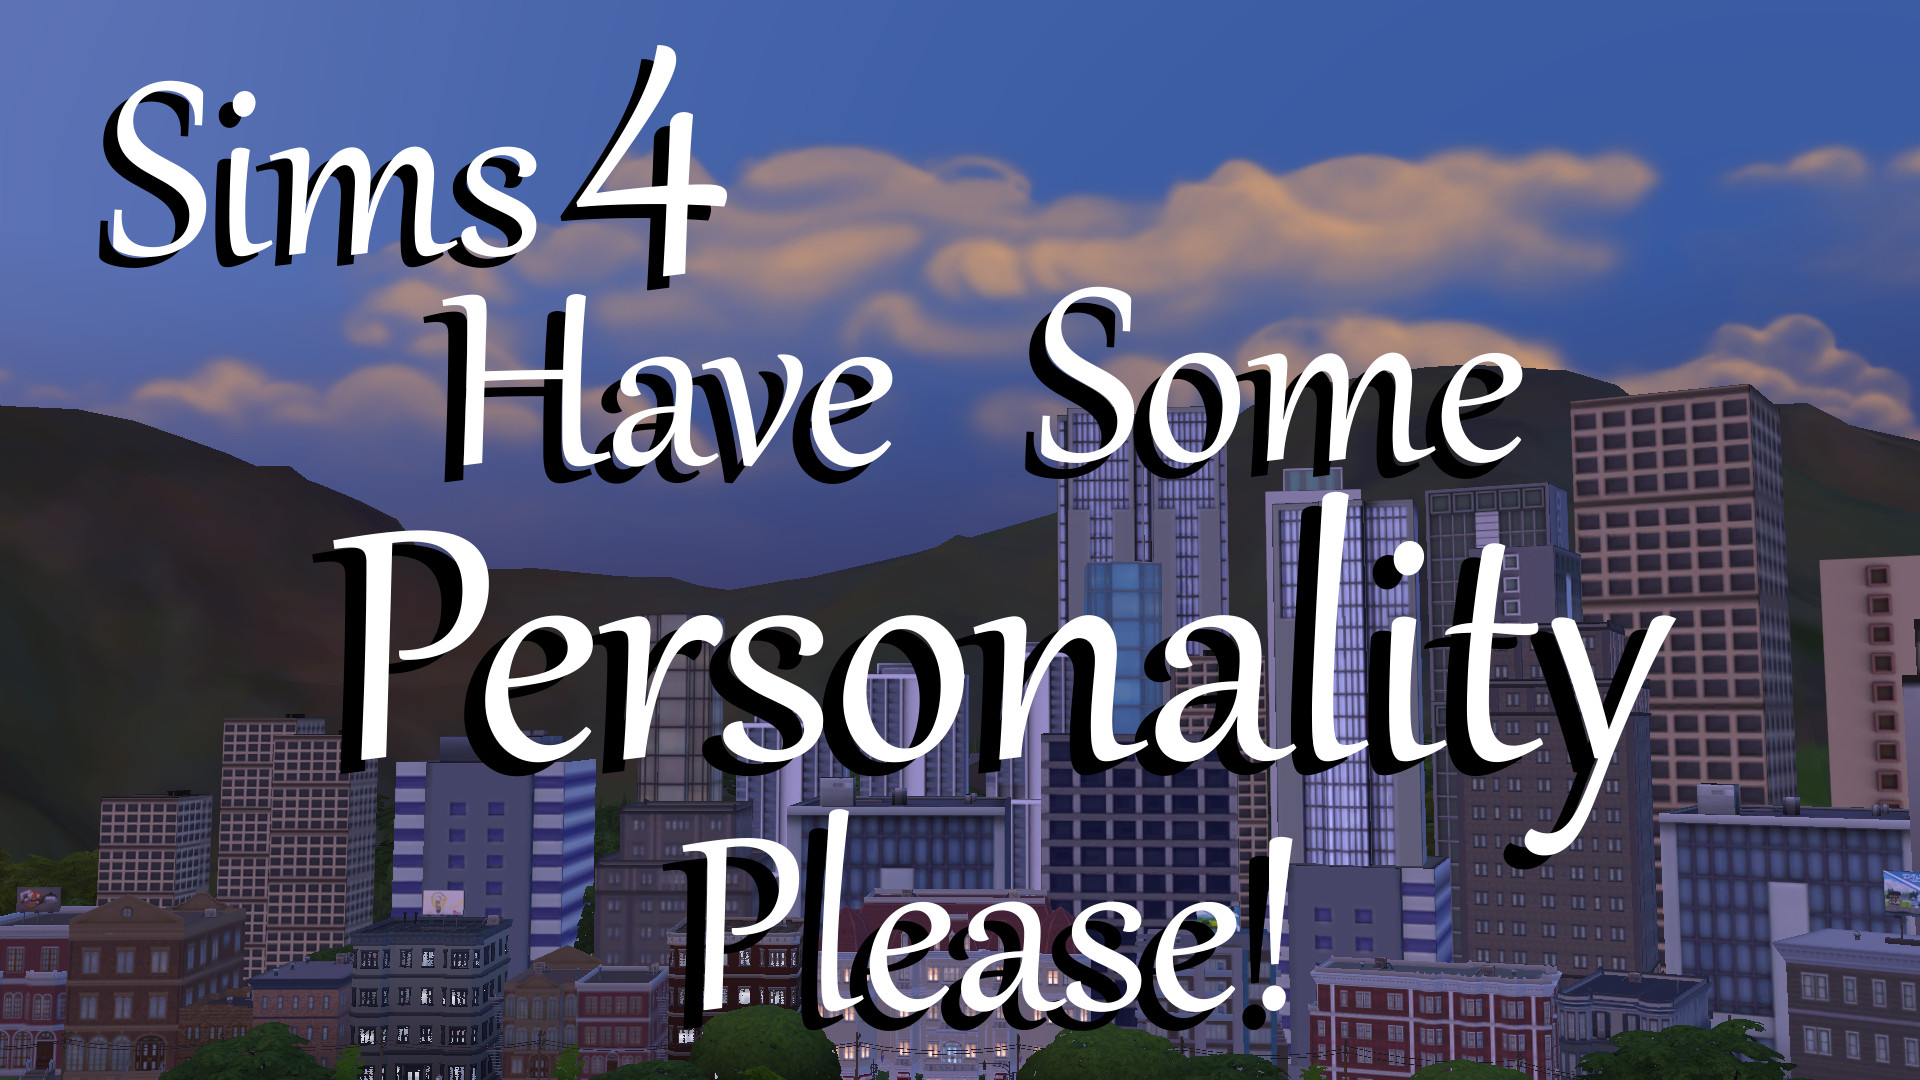 Mod The Sims - Have Some Personality Please!